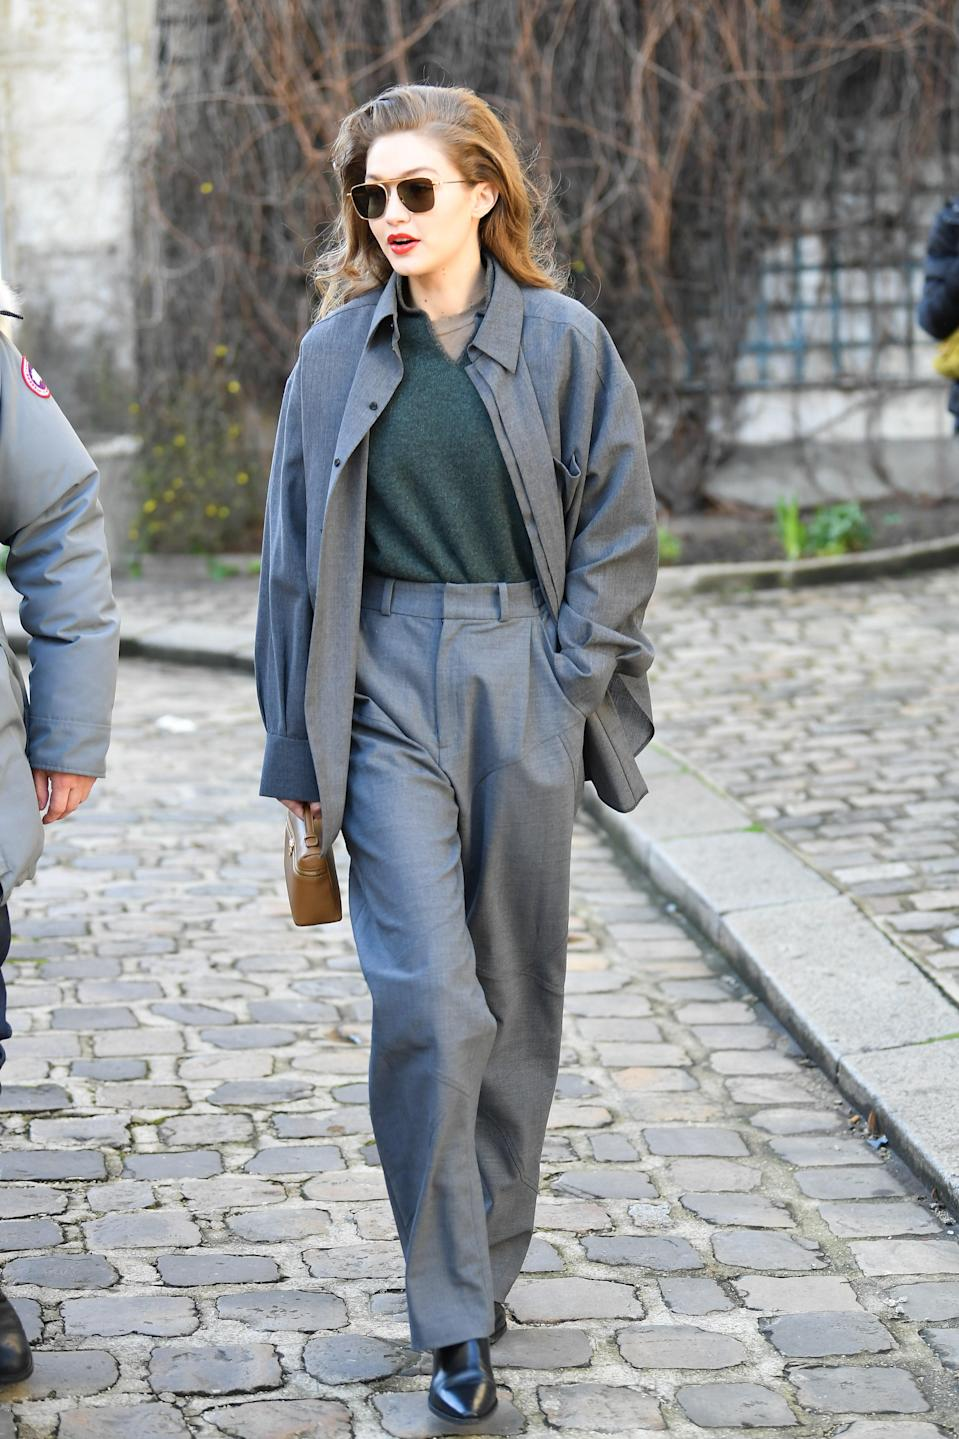 Another take on the silhouette play. For the Lanvin show, Gigi opted for grey. Instead of a tailored suit, she favored oversized proportions and this is perhaps one of her strongest street style looks to date. Elegant yet casual.